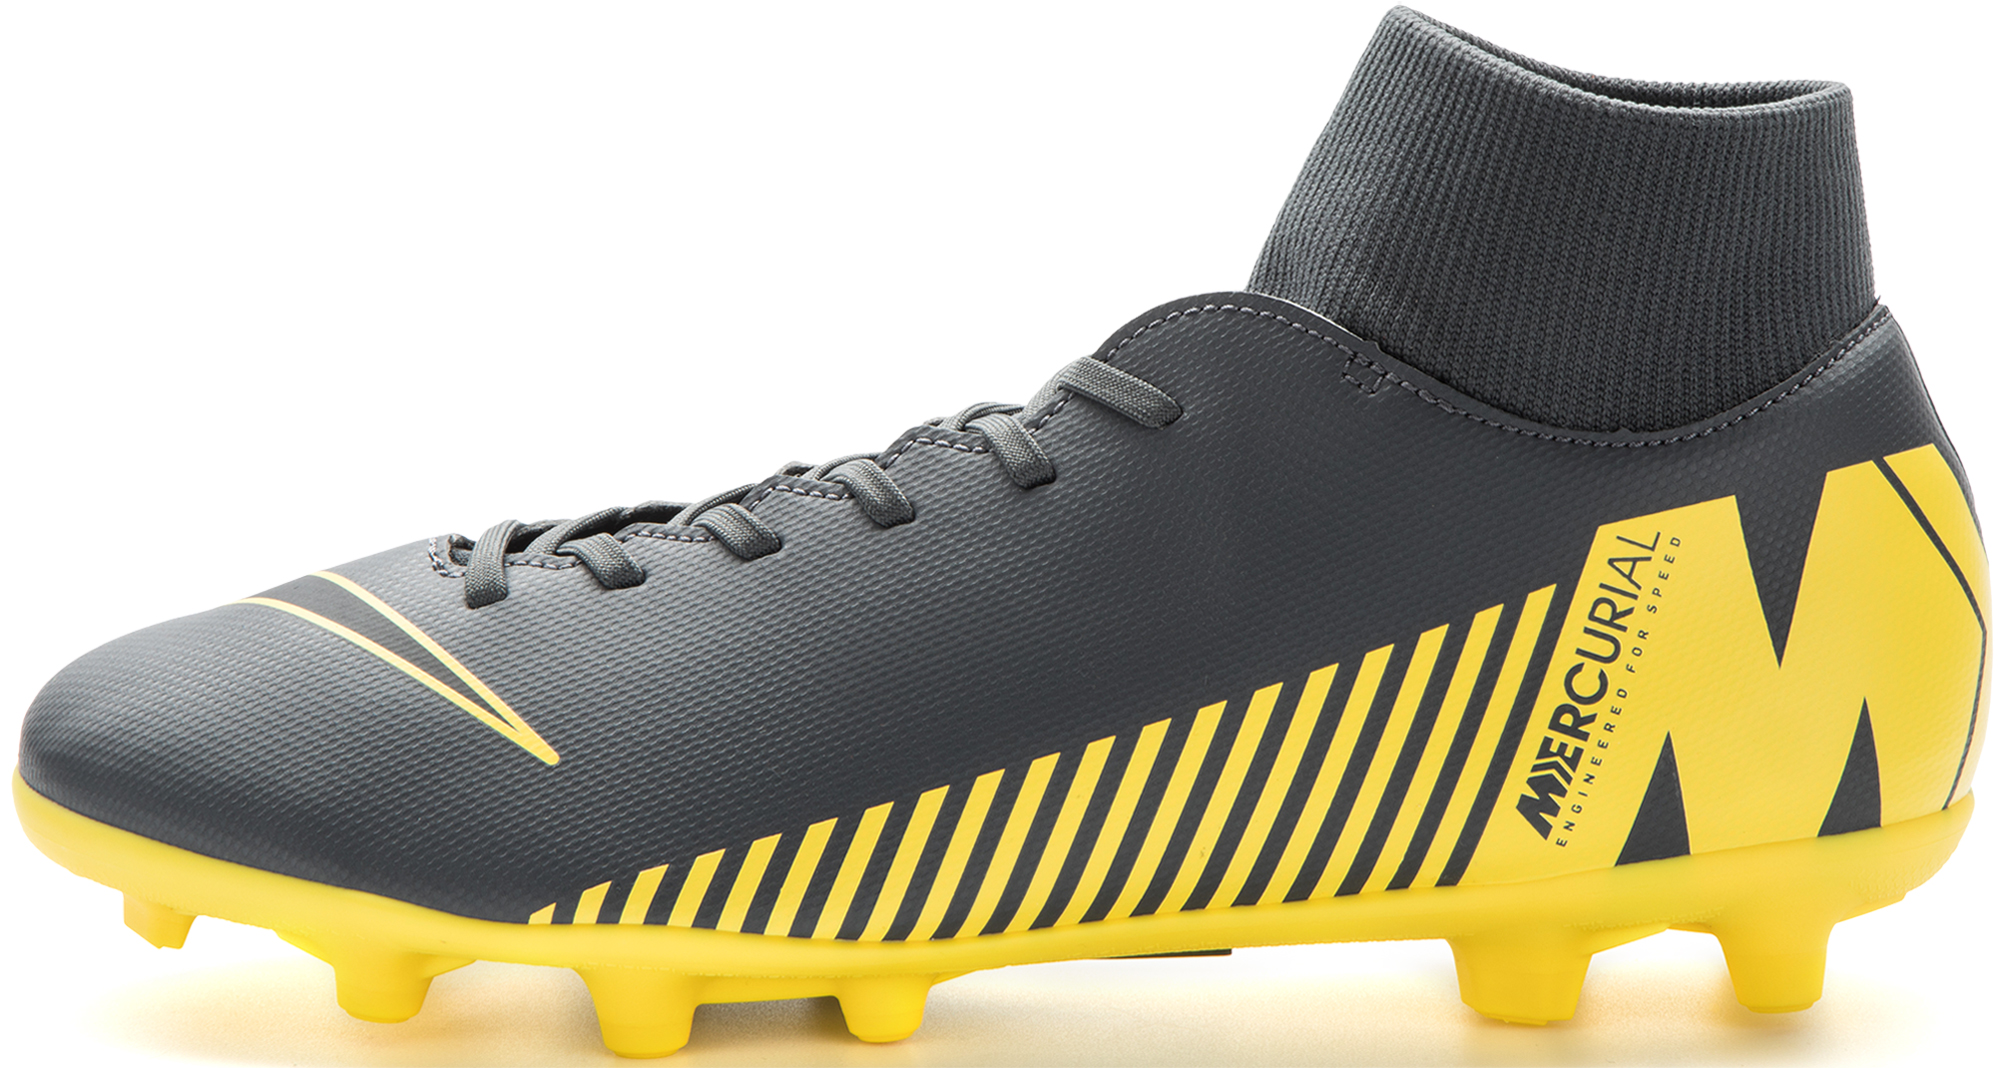 Nike Бутсы мужские Nike Mercurial Superfly 6 Club FG/MG, размер 43 бутсы nike superfly 6 club fg mg ah7363 001